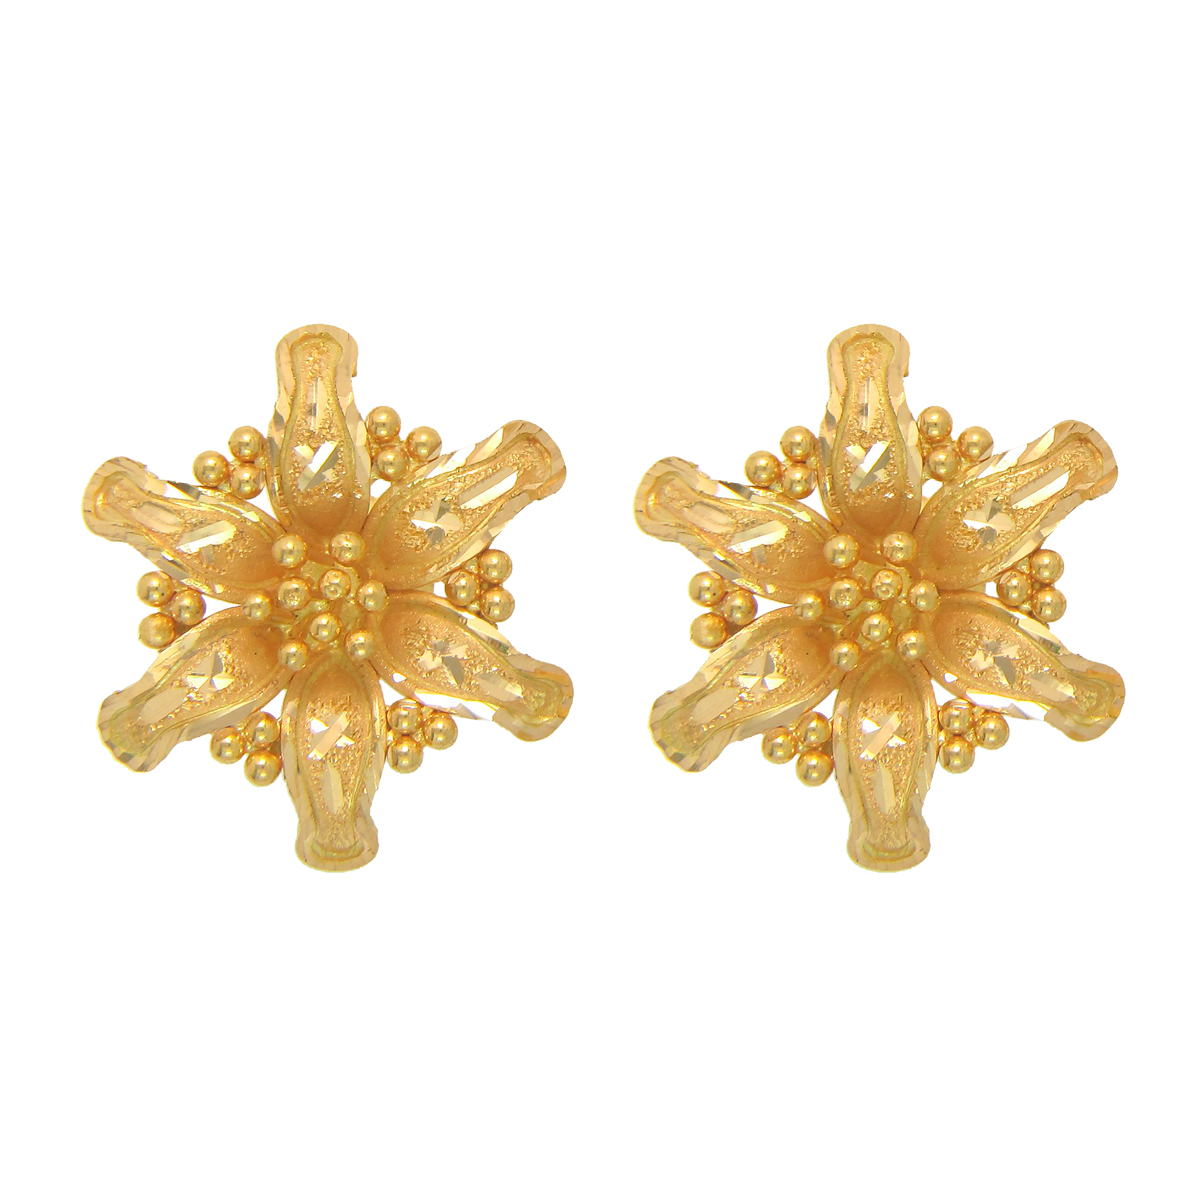 Popley 22Kt Gold Bandhan Earring - A50